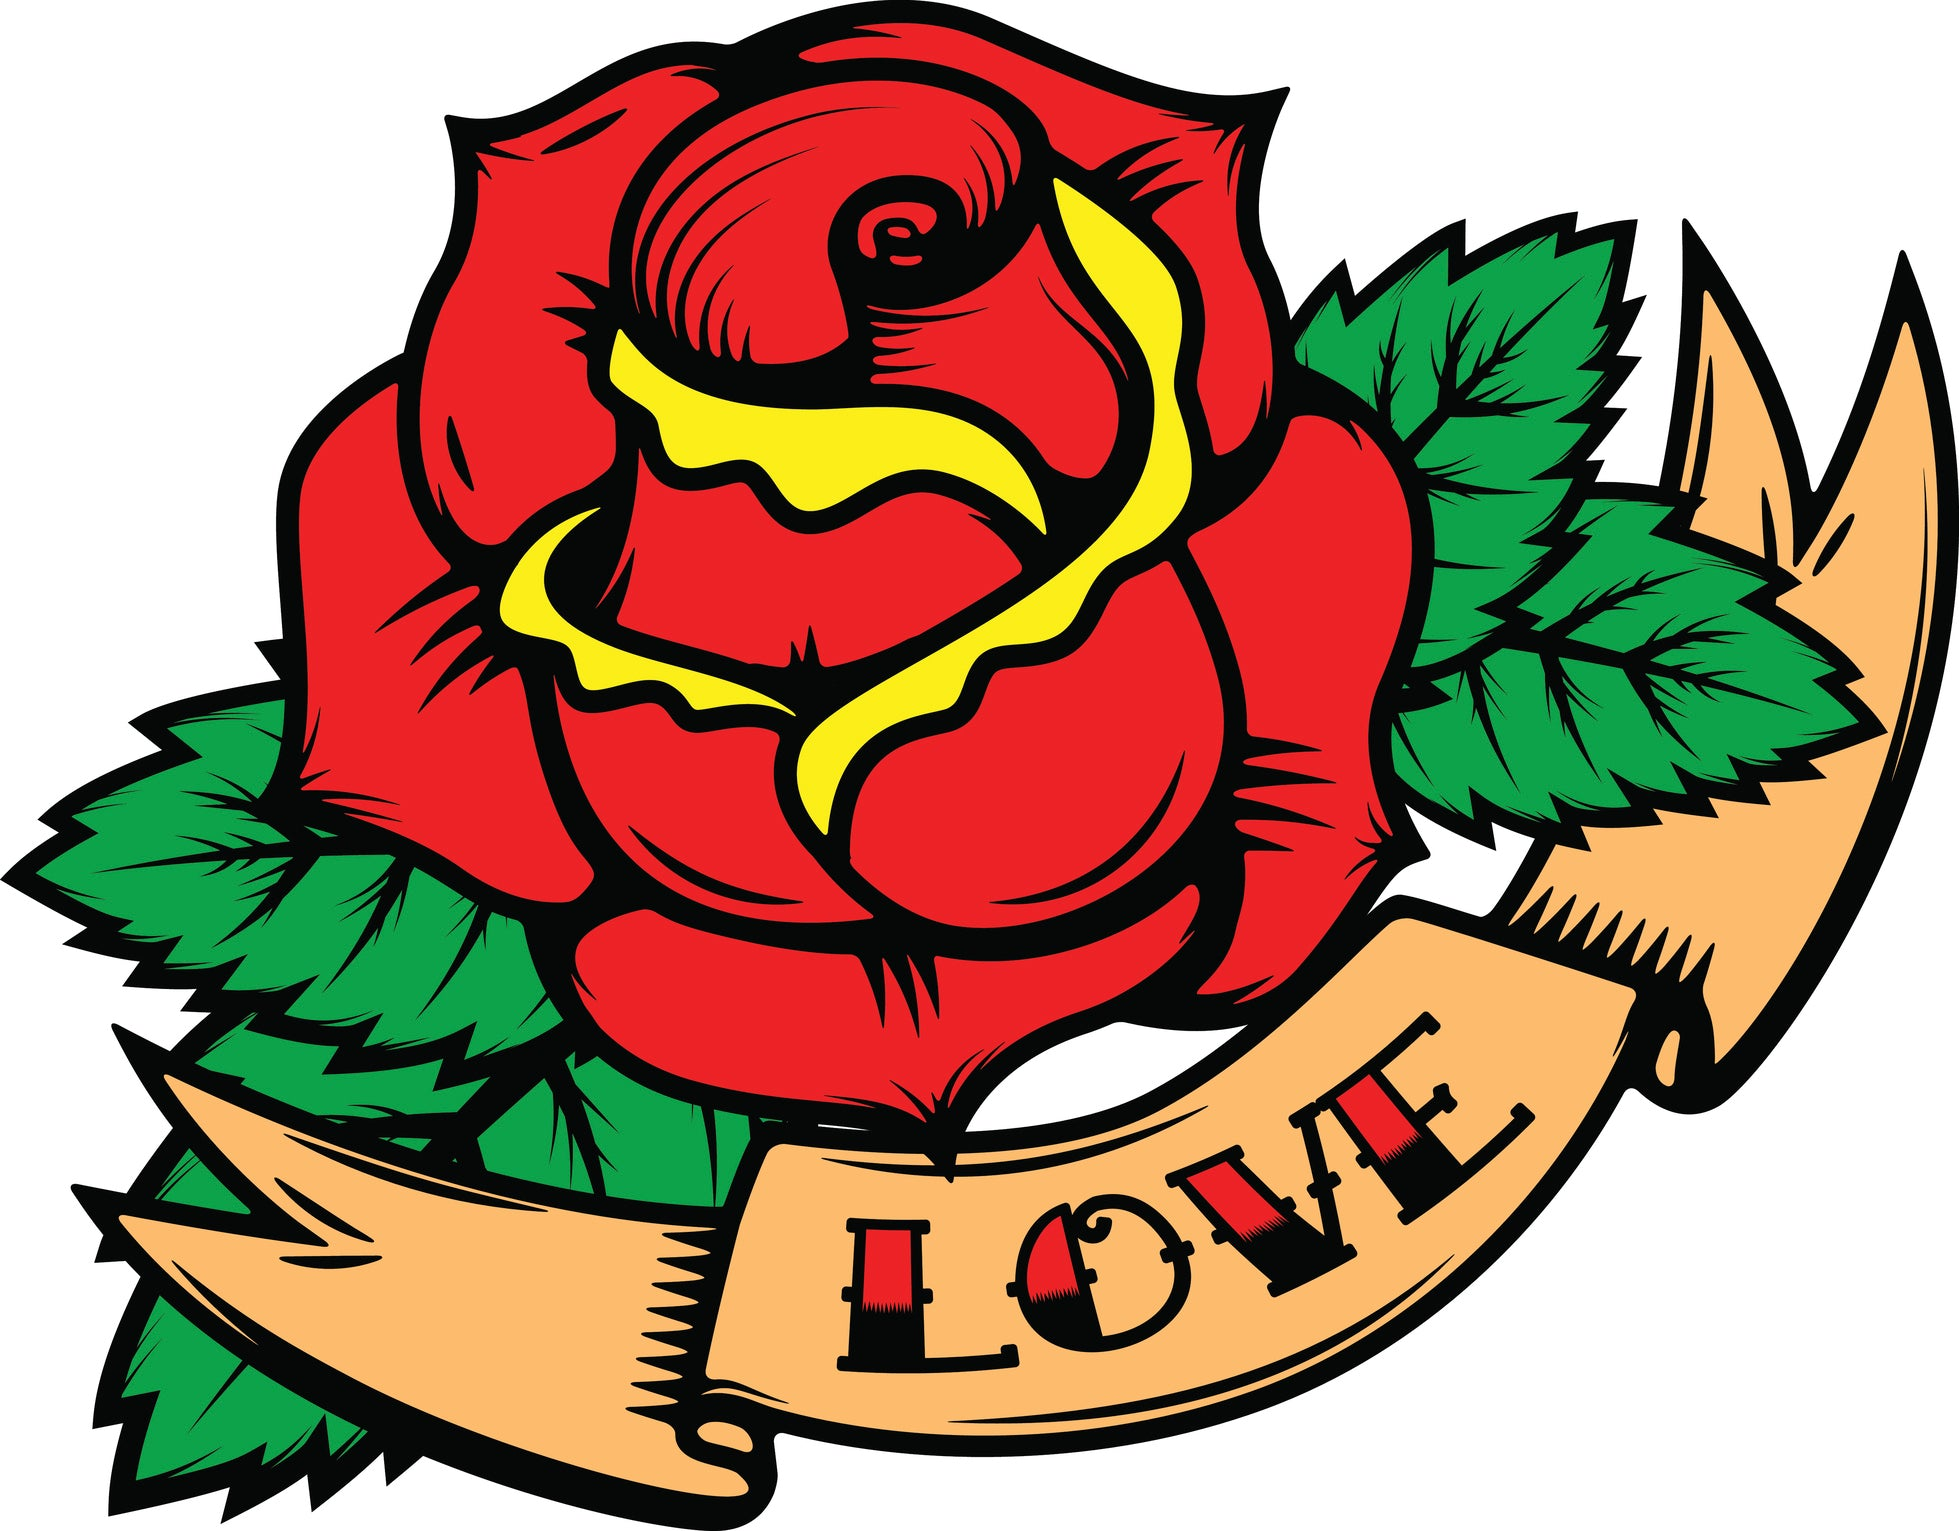 Simple Vintage Retro Rose Tattoo Style with Love Banner Cartoon Art Vinyl Decal Sticker